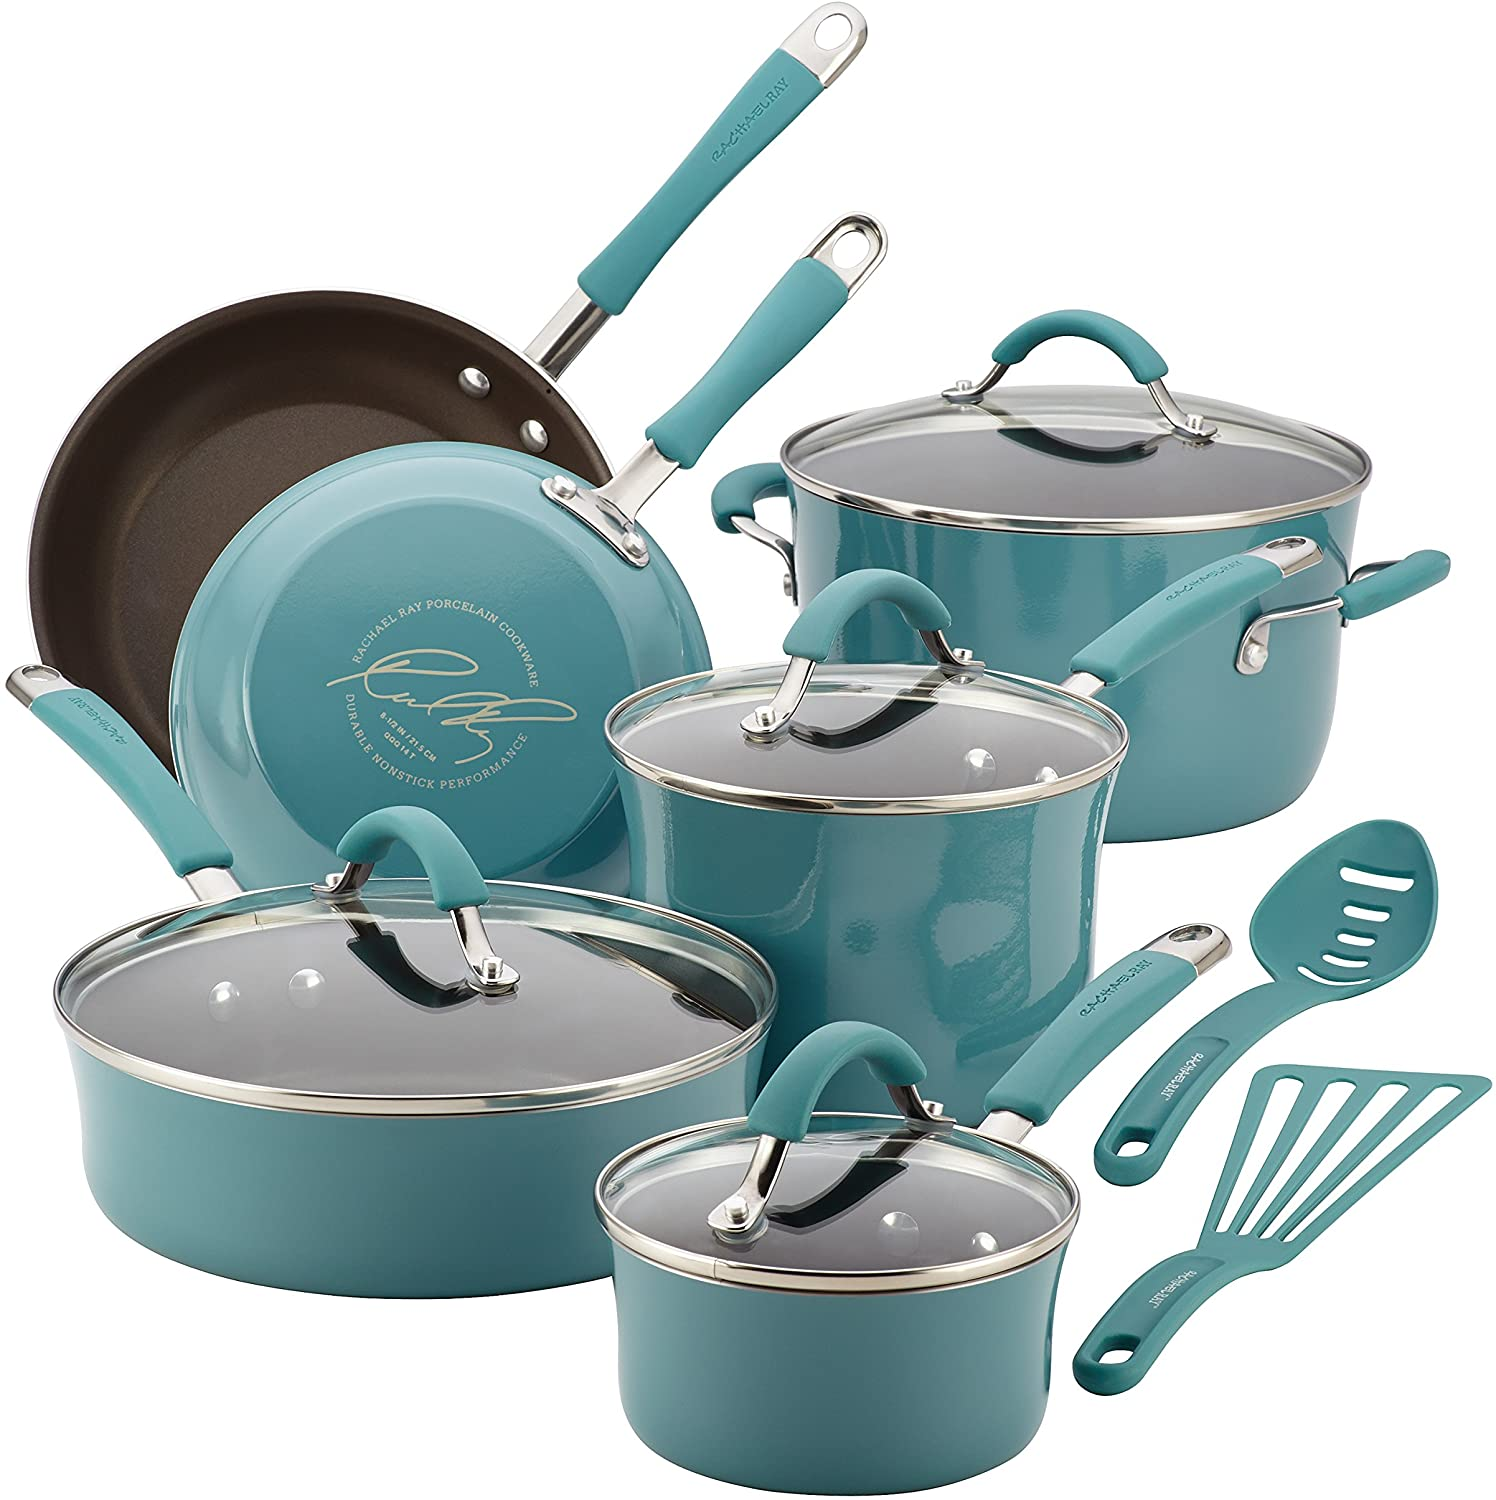 Rachael Ray Nonstick Cookware Pots and Pans Set (12 piece)